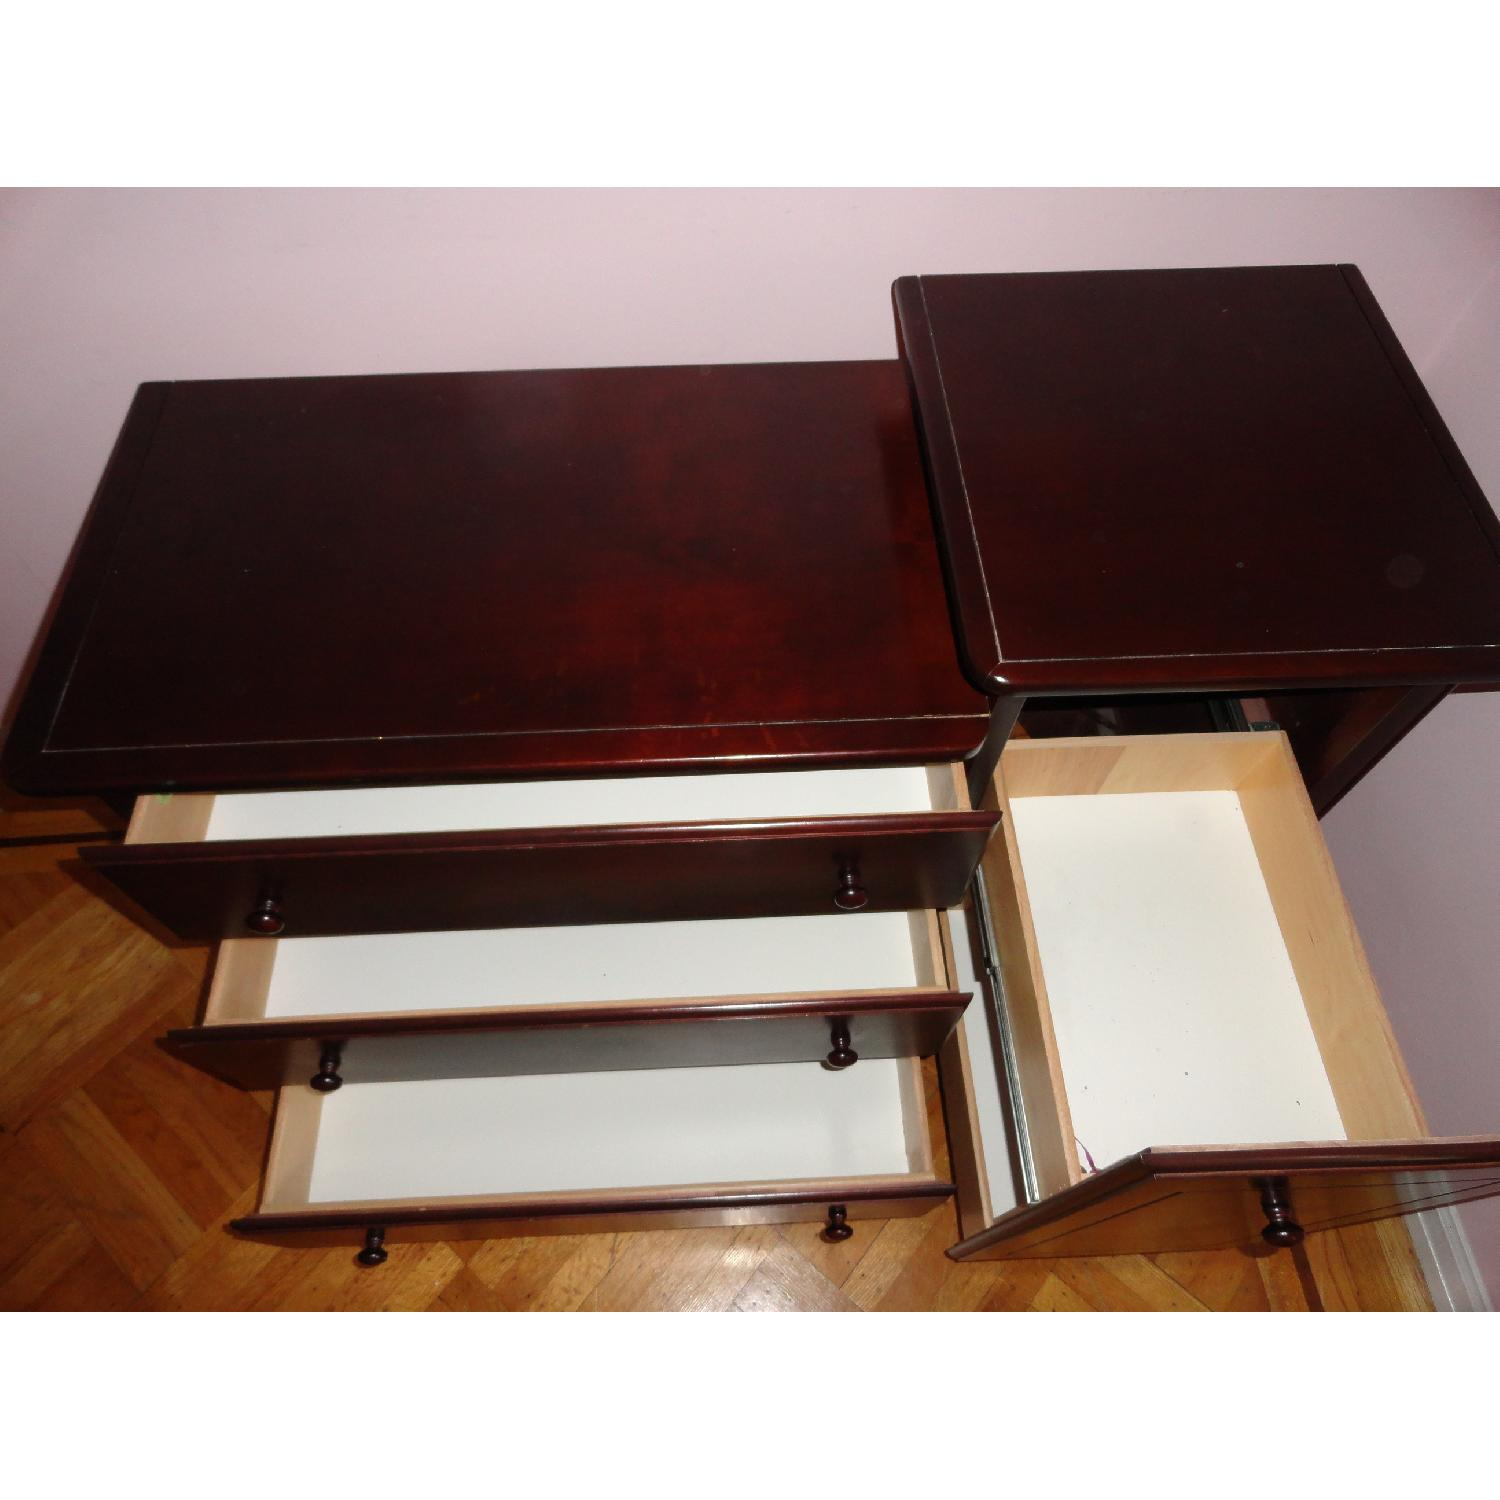 Ragazzi 4 Drawer Mahogany Changing Table - image-5